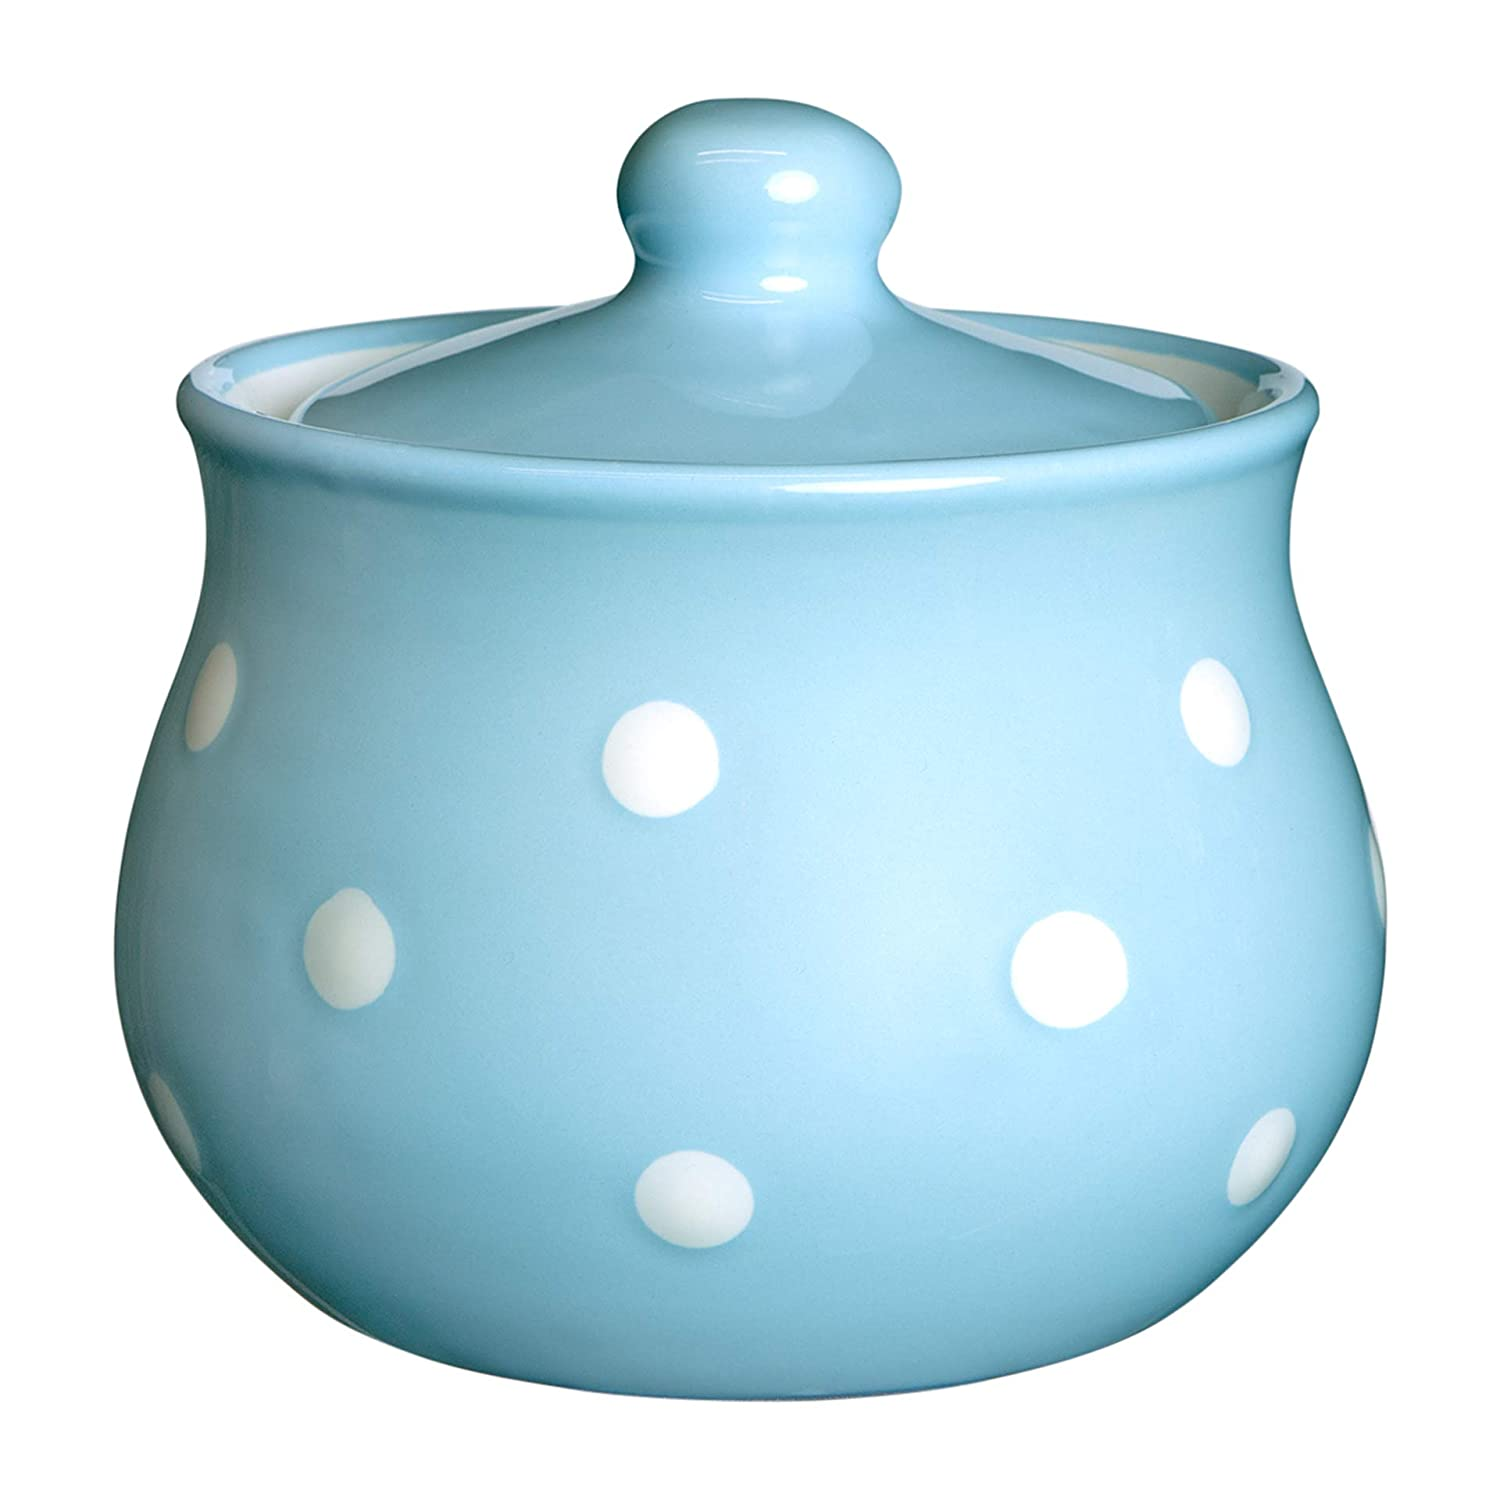 City to Cottage Light Sky Blue And White Polka Dot Spotty Handmade Hand Painted Ceramic Sugar Bowl Pot With Lid | Jam Honey Jar citytocottage.co.uk